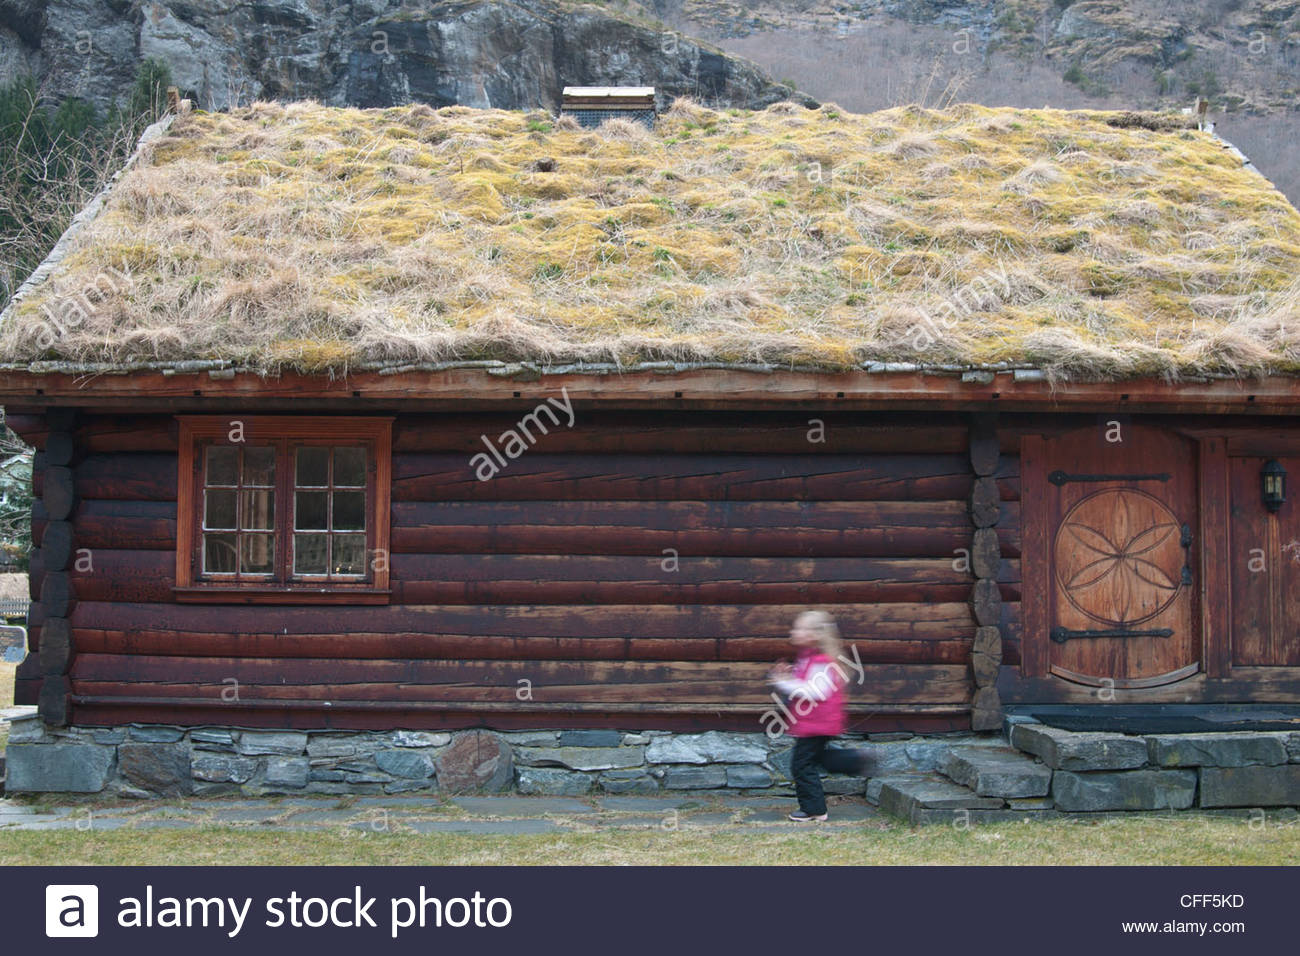 Sod-roofed home in Flam, Norway, Scandinavia, Europe - Stock Image